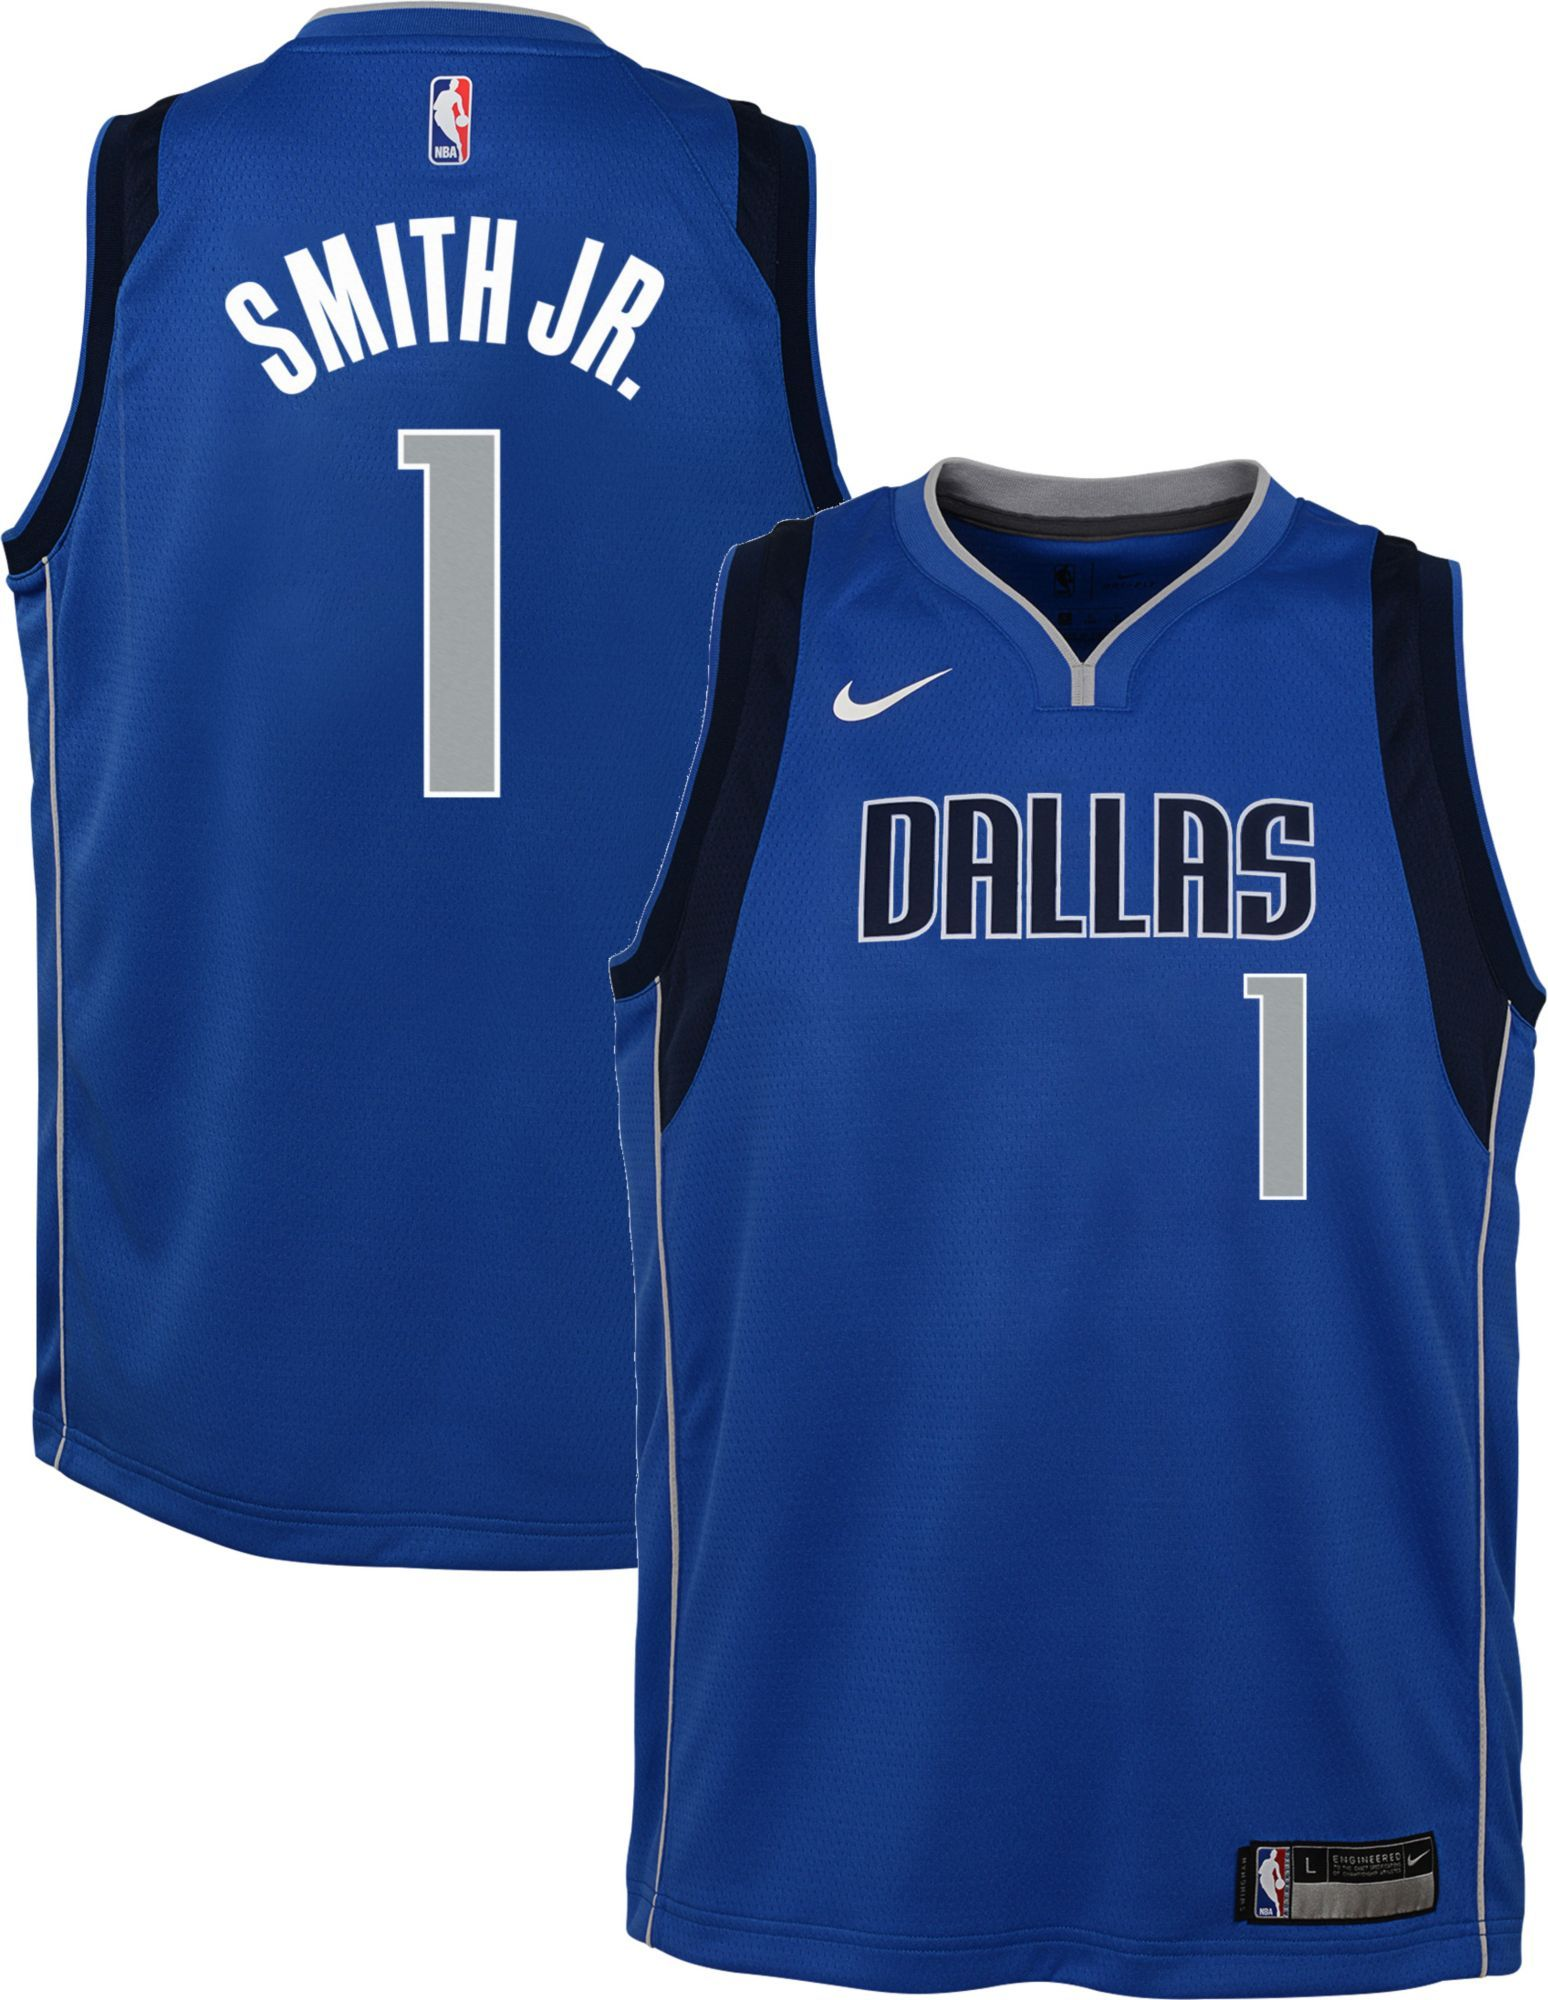 new style d3515 4d3e7 Nike Youth Dallas Mavericks Dennis Smith Jr. #1 Blue Dri-FIT ...